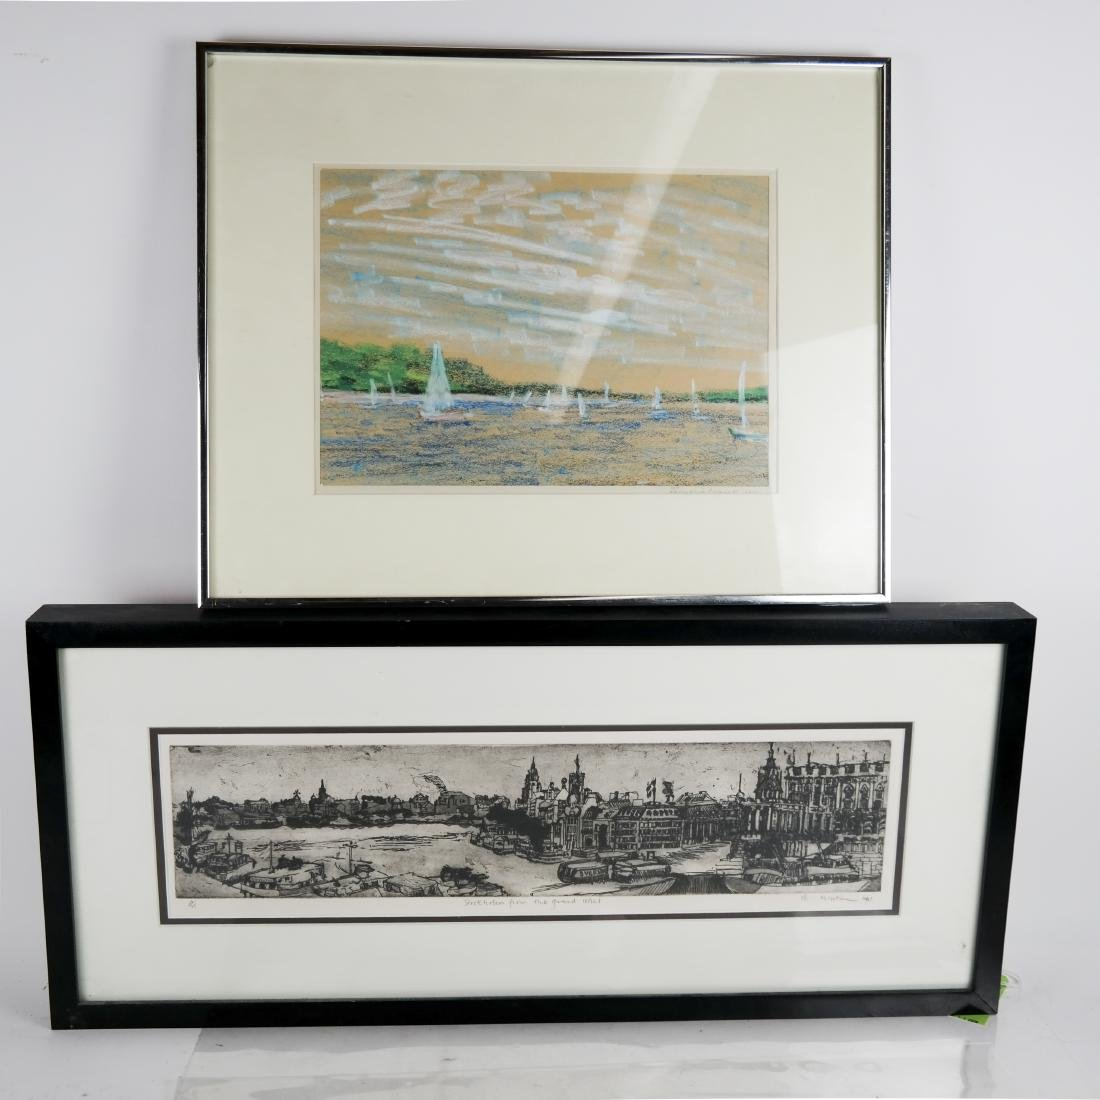 2 Framed Works - Sailing (Pastel) & City (Print)